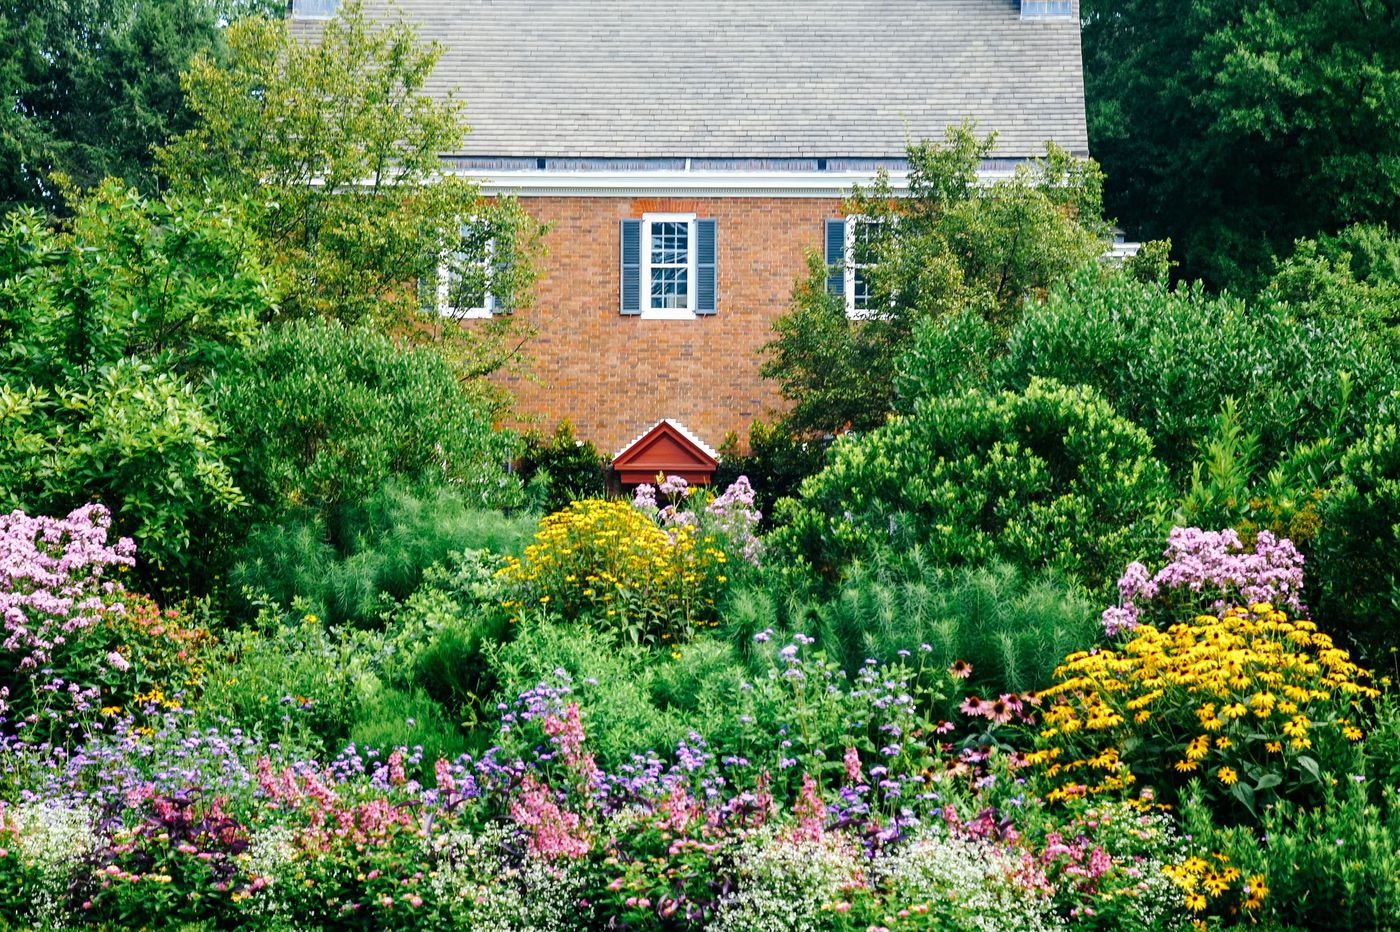 Delaware's Mt. Cuba Center is top botanical garden in the country, USA Today poll finds